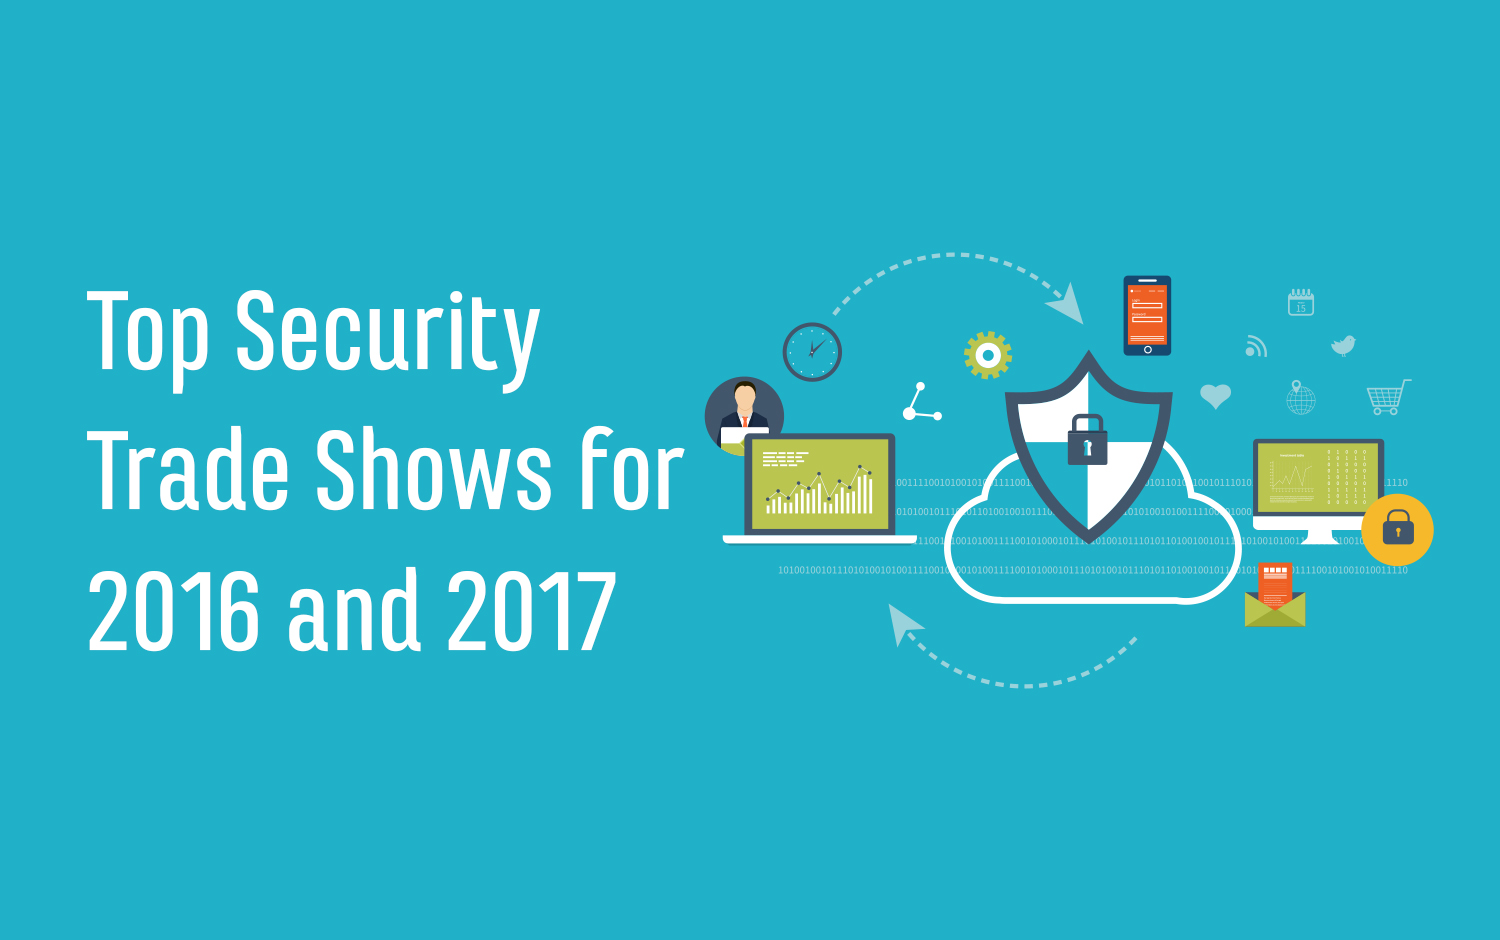 Top Security Solutions 2017